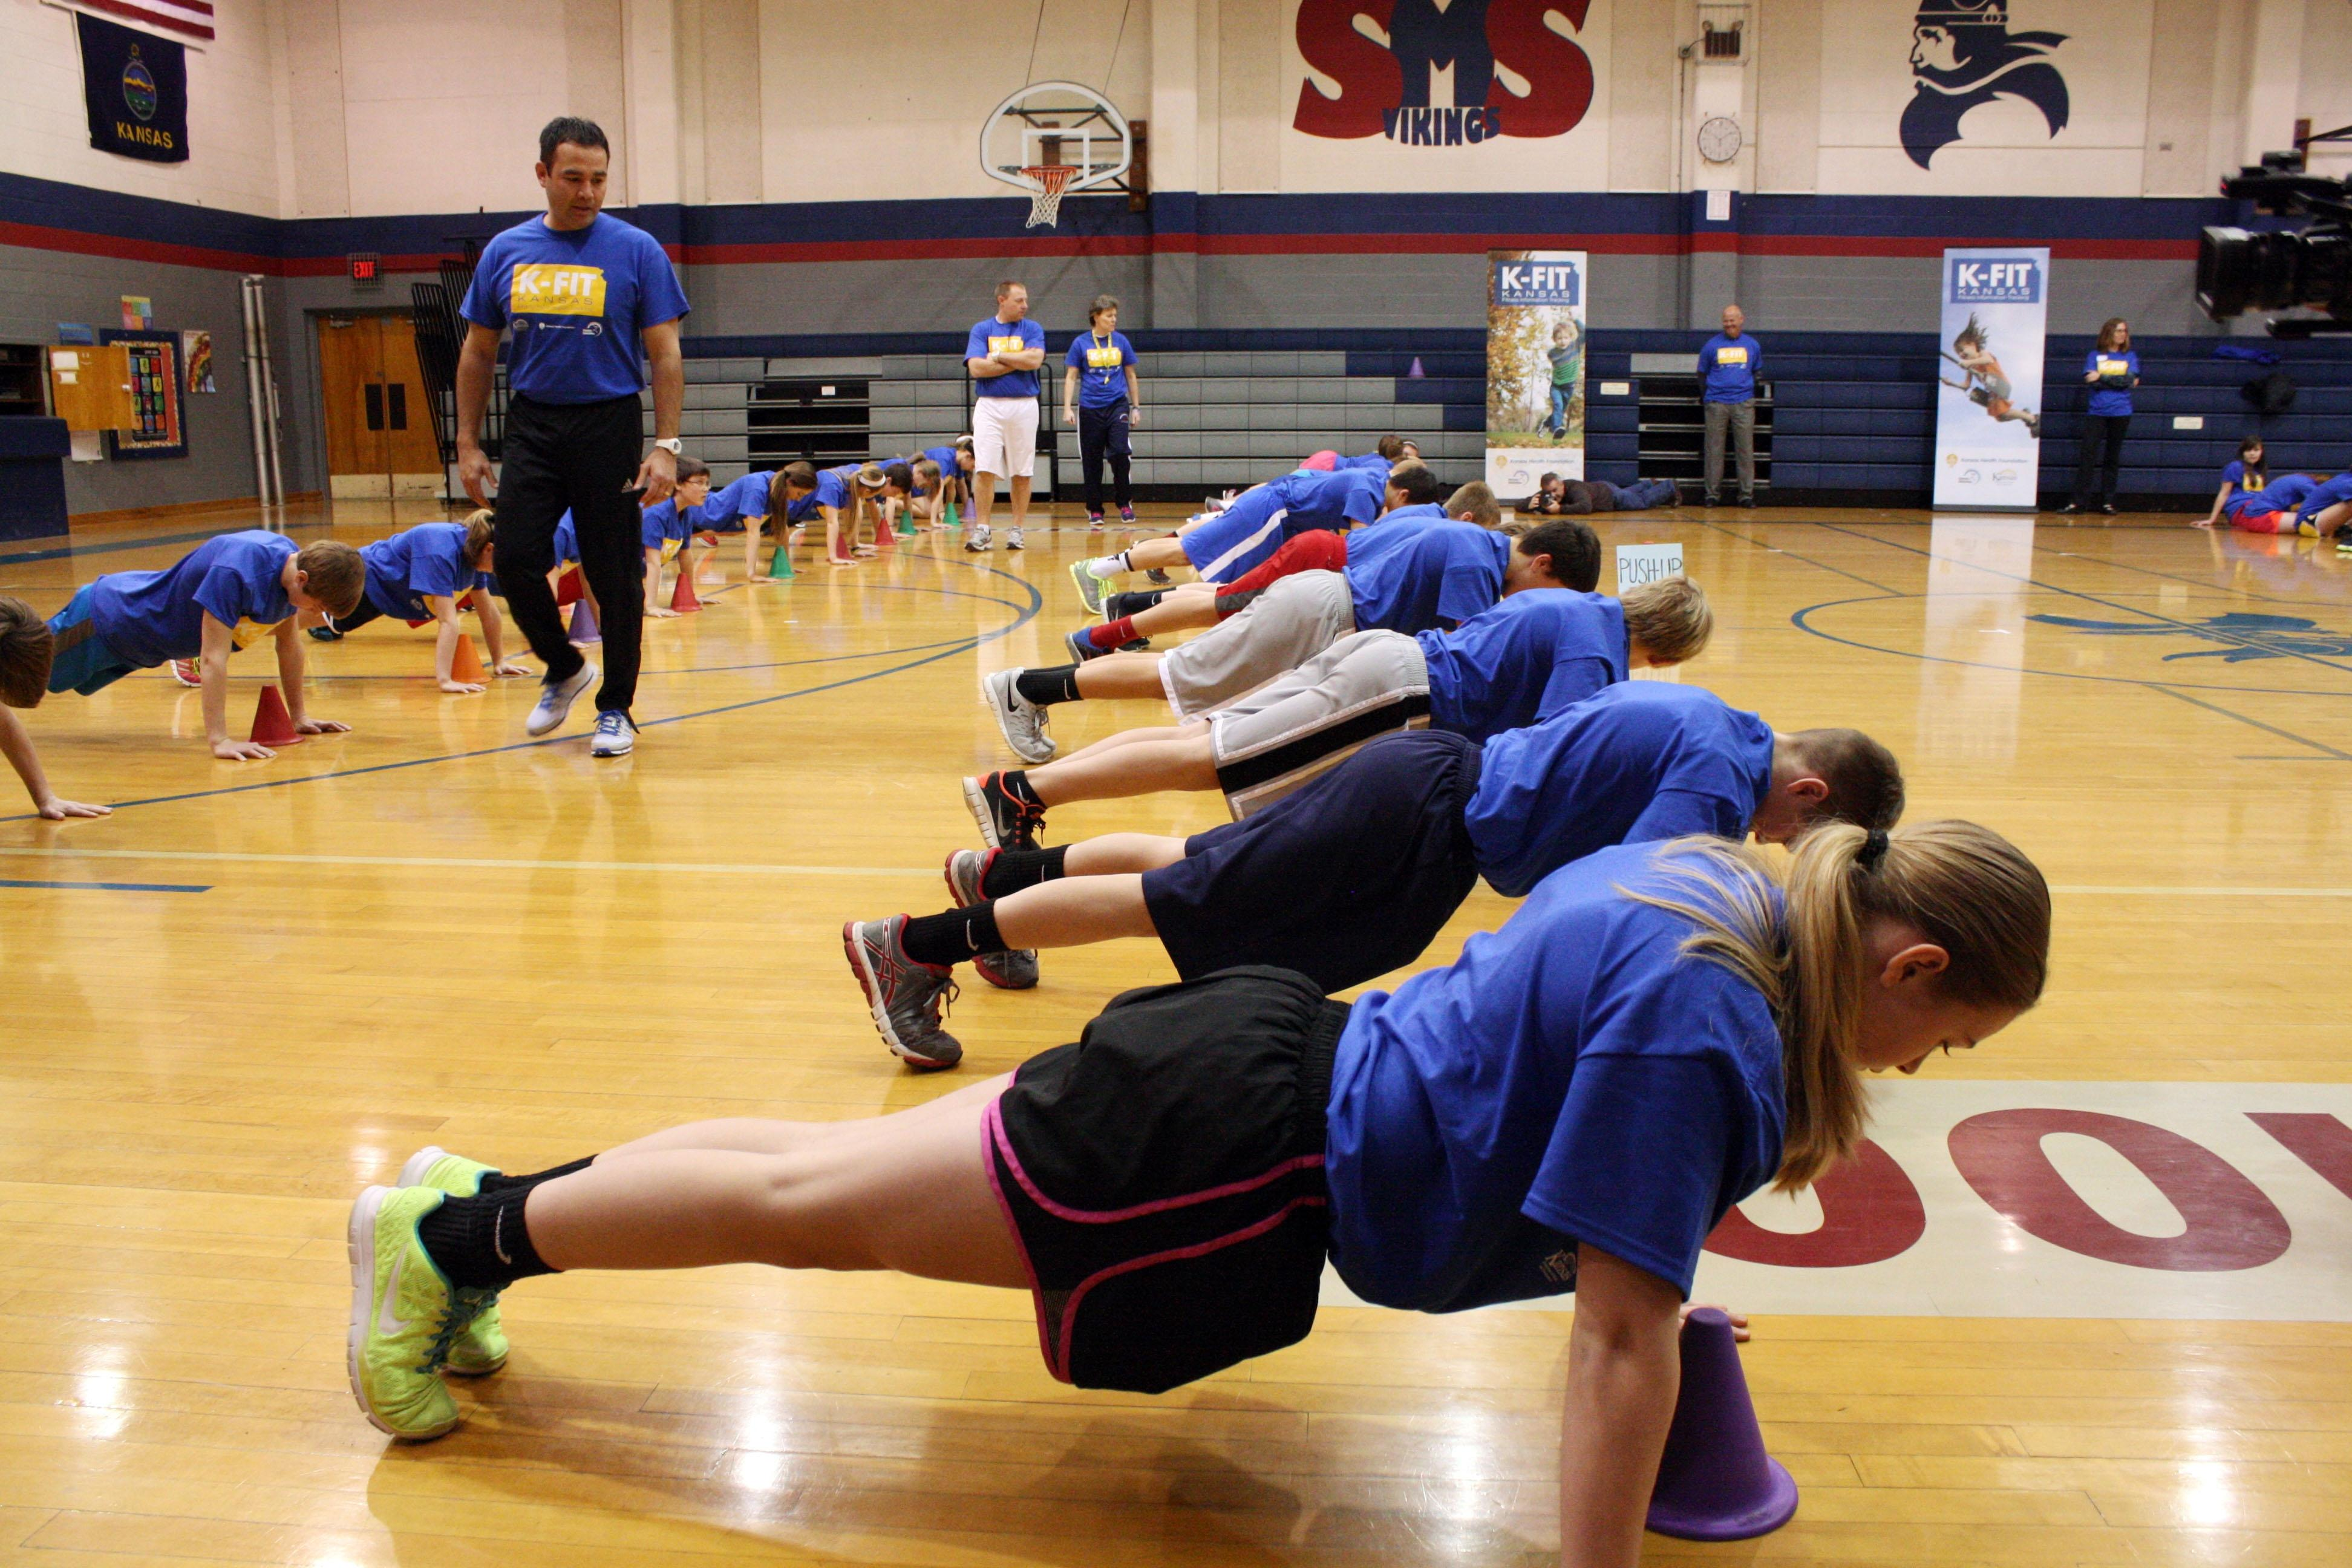 physical activity and fitness on academic Academics & physical activity evidence-based physical education  the study examined fitness and academic results of more than 300 students at a west michigan .